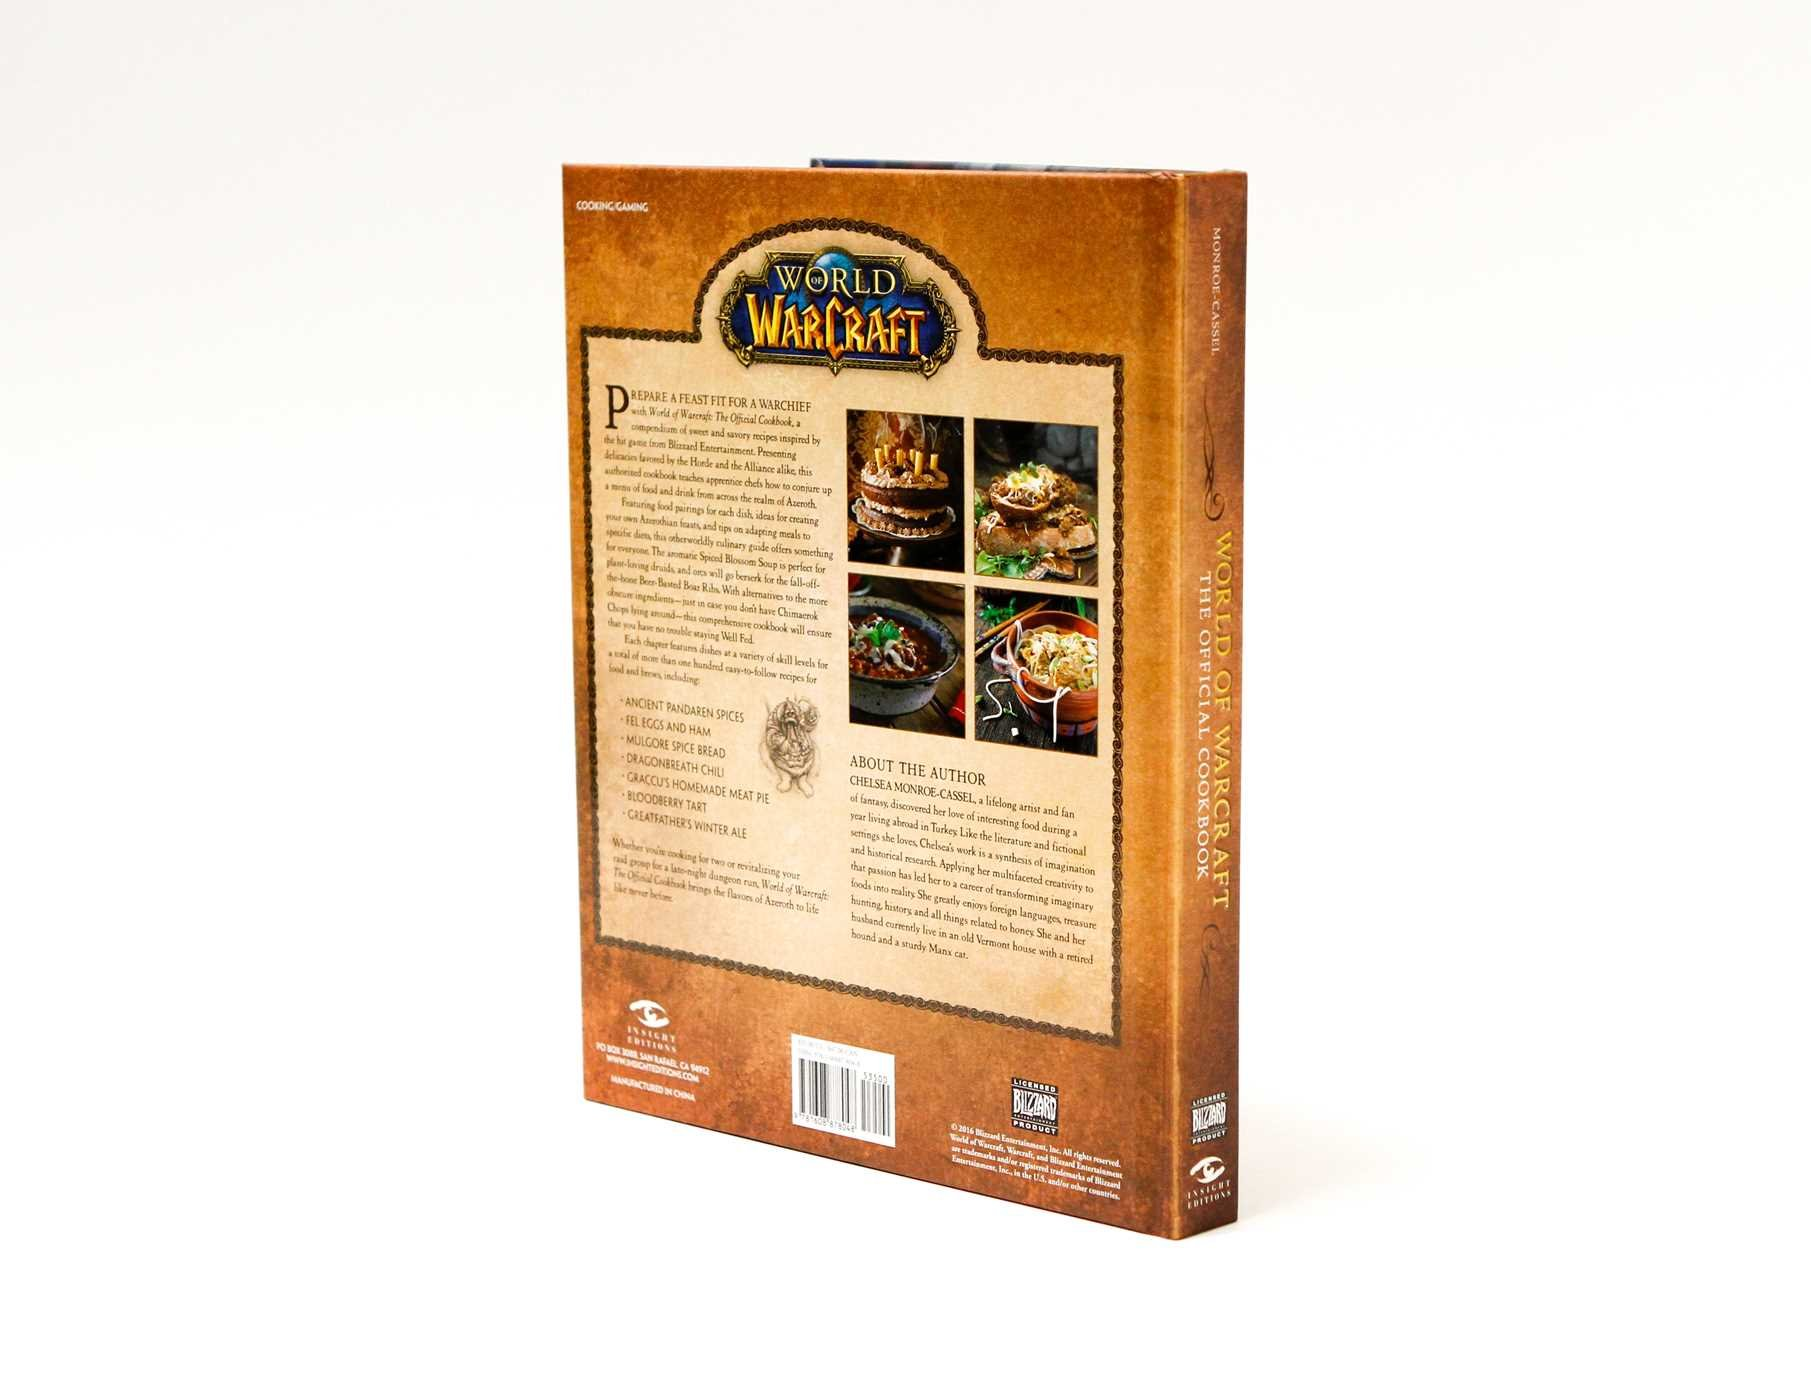 World of Warcraft: The Official Cookbook by Insight Editions